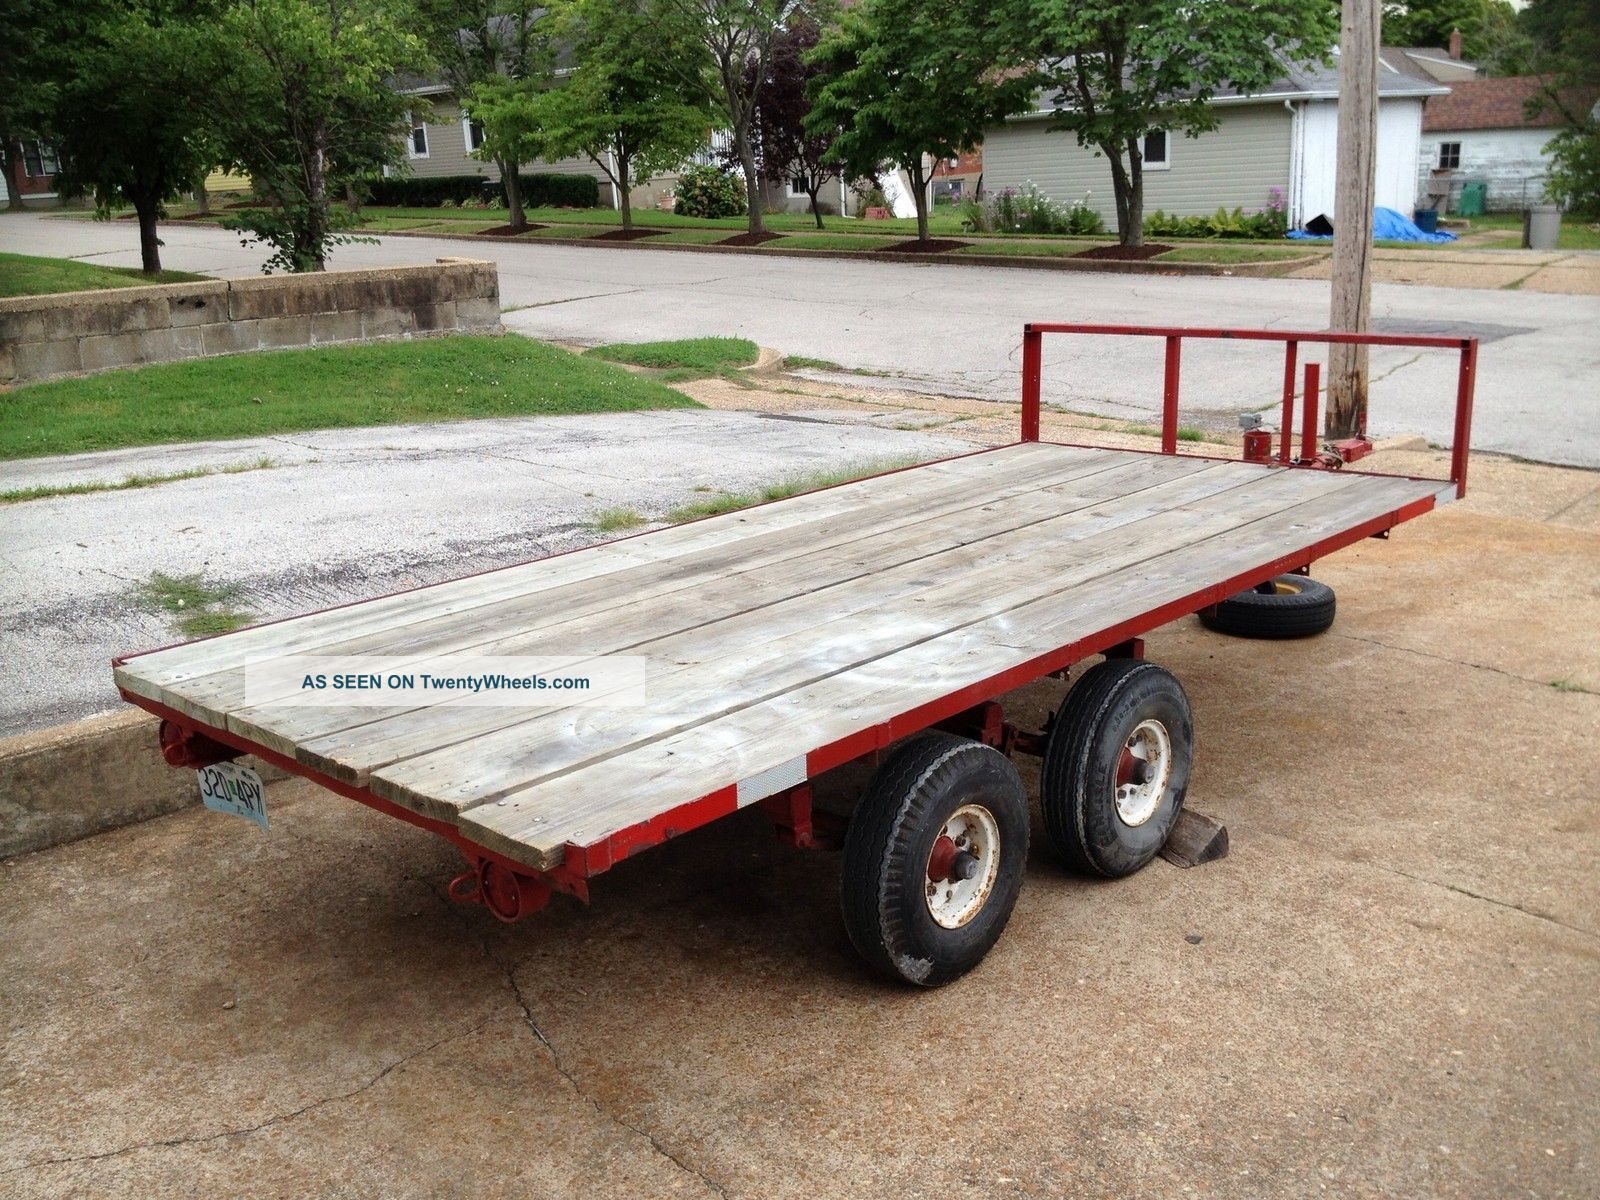 Flatbed Utility Trailer 5 1/2 X 12 Trailers photo